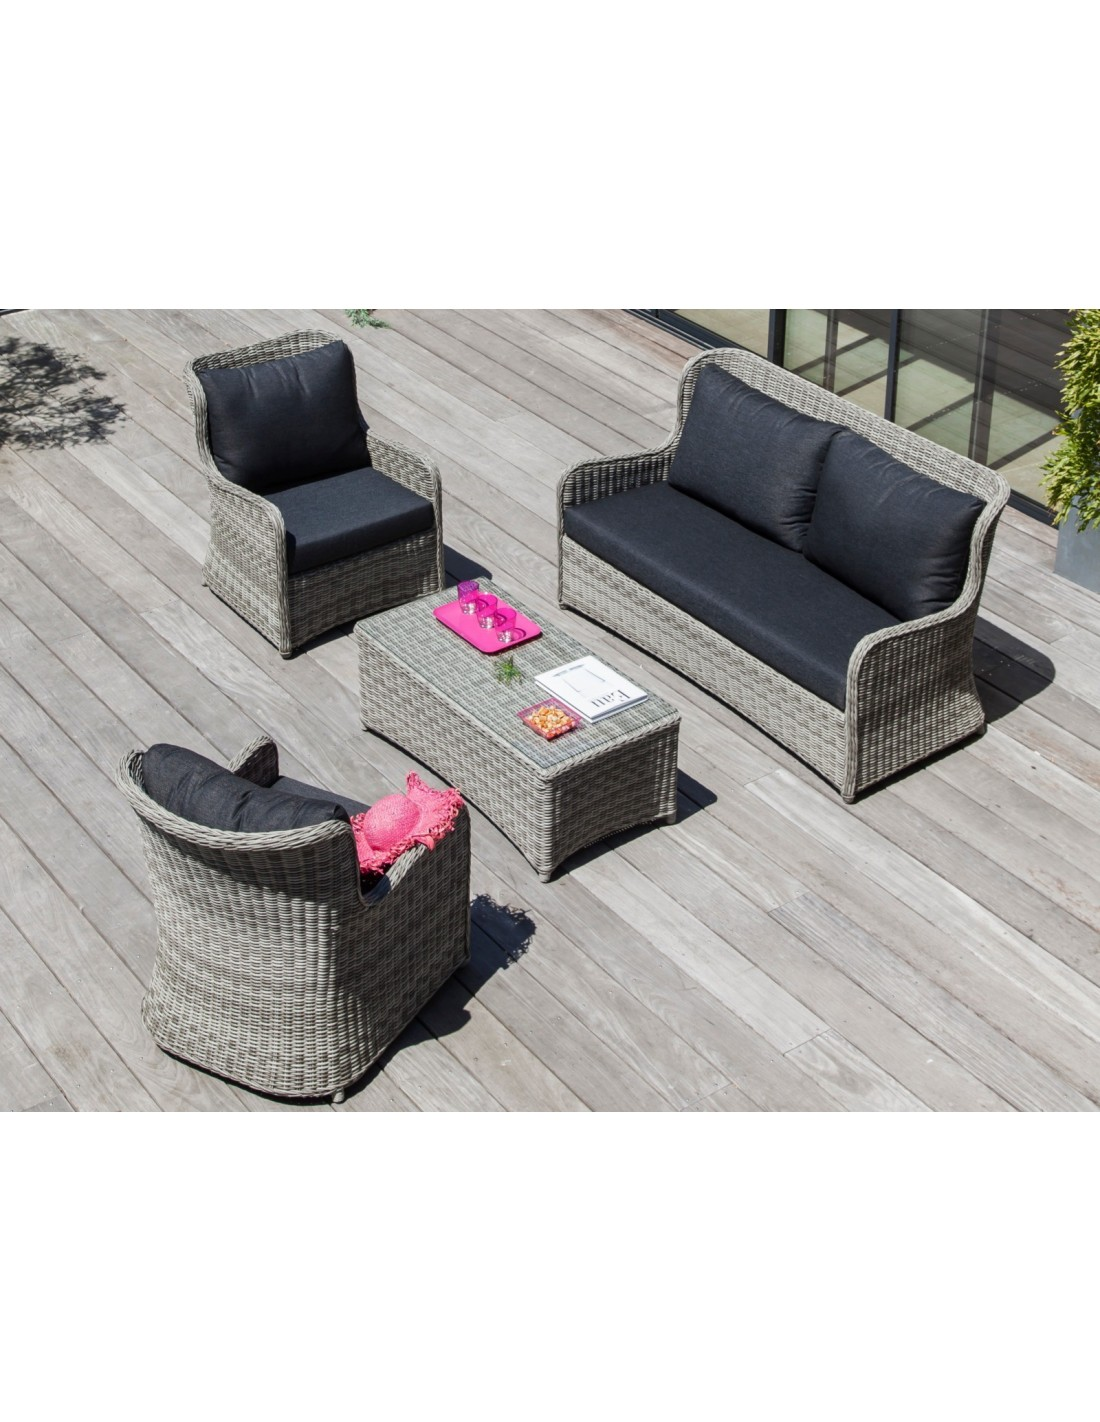 salon de jardin d tente denver 4 personnes r sine tress e proloisirs. Black Bedroom Furniture Sets. Home Design Ideas